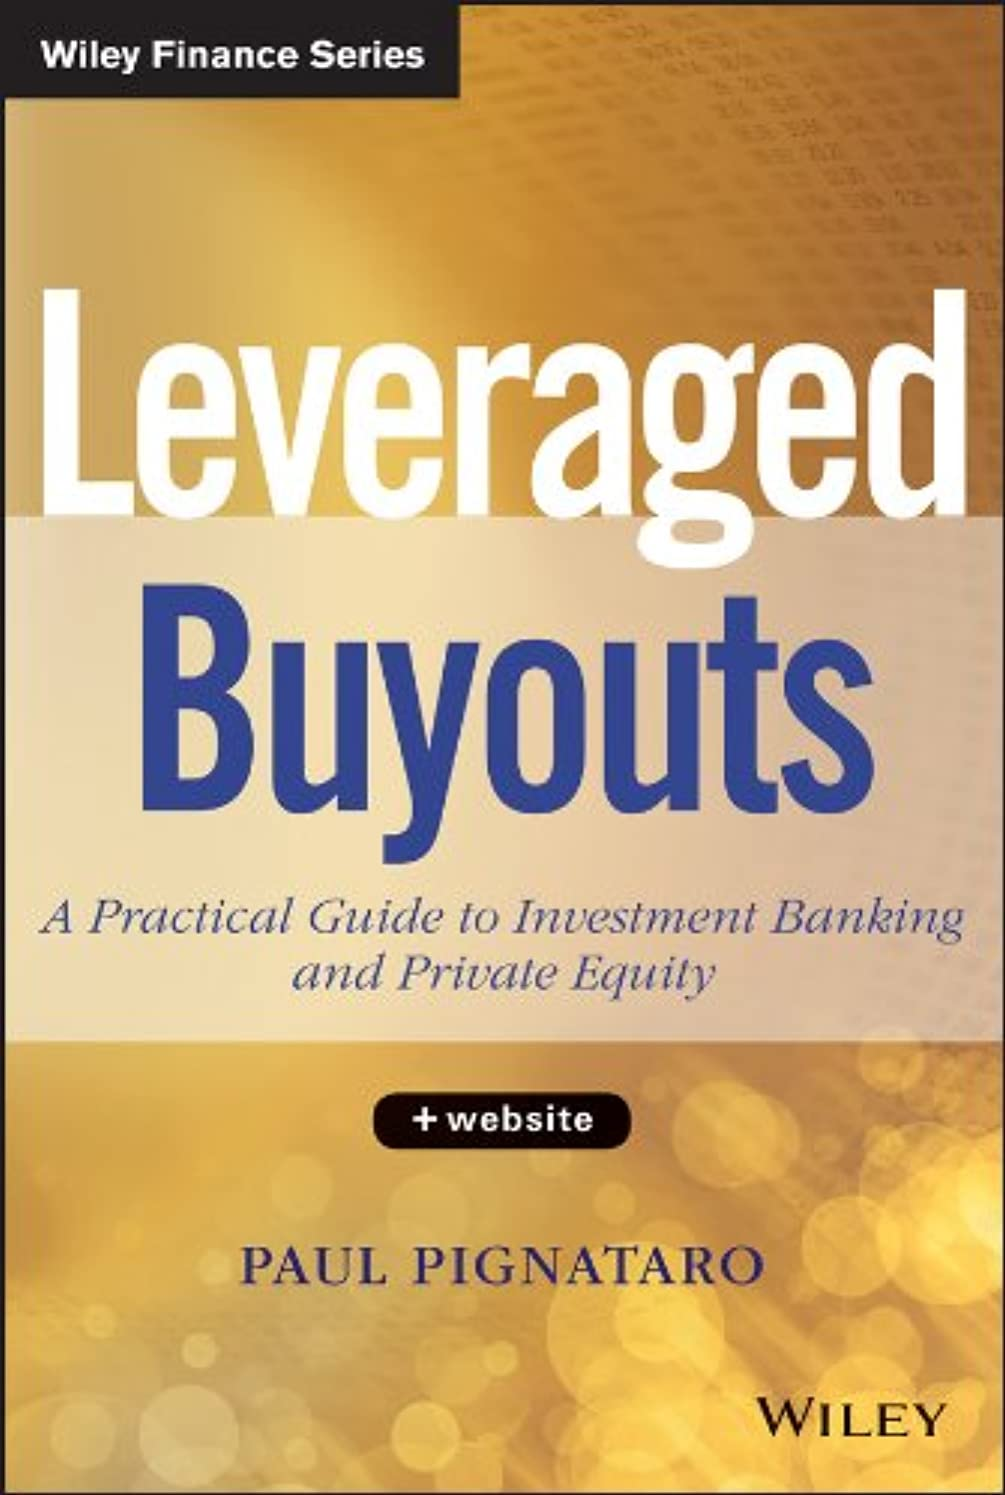 Leveraged Buyouts: A Practical Guide to Investment Banking and Private Equity (Wiley Finance) (English Edition)